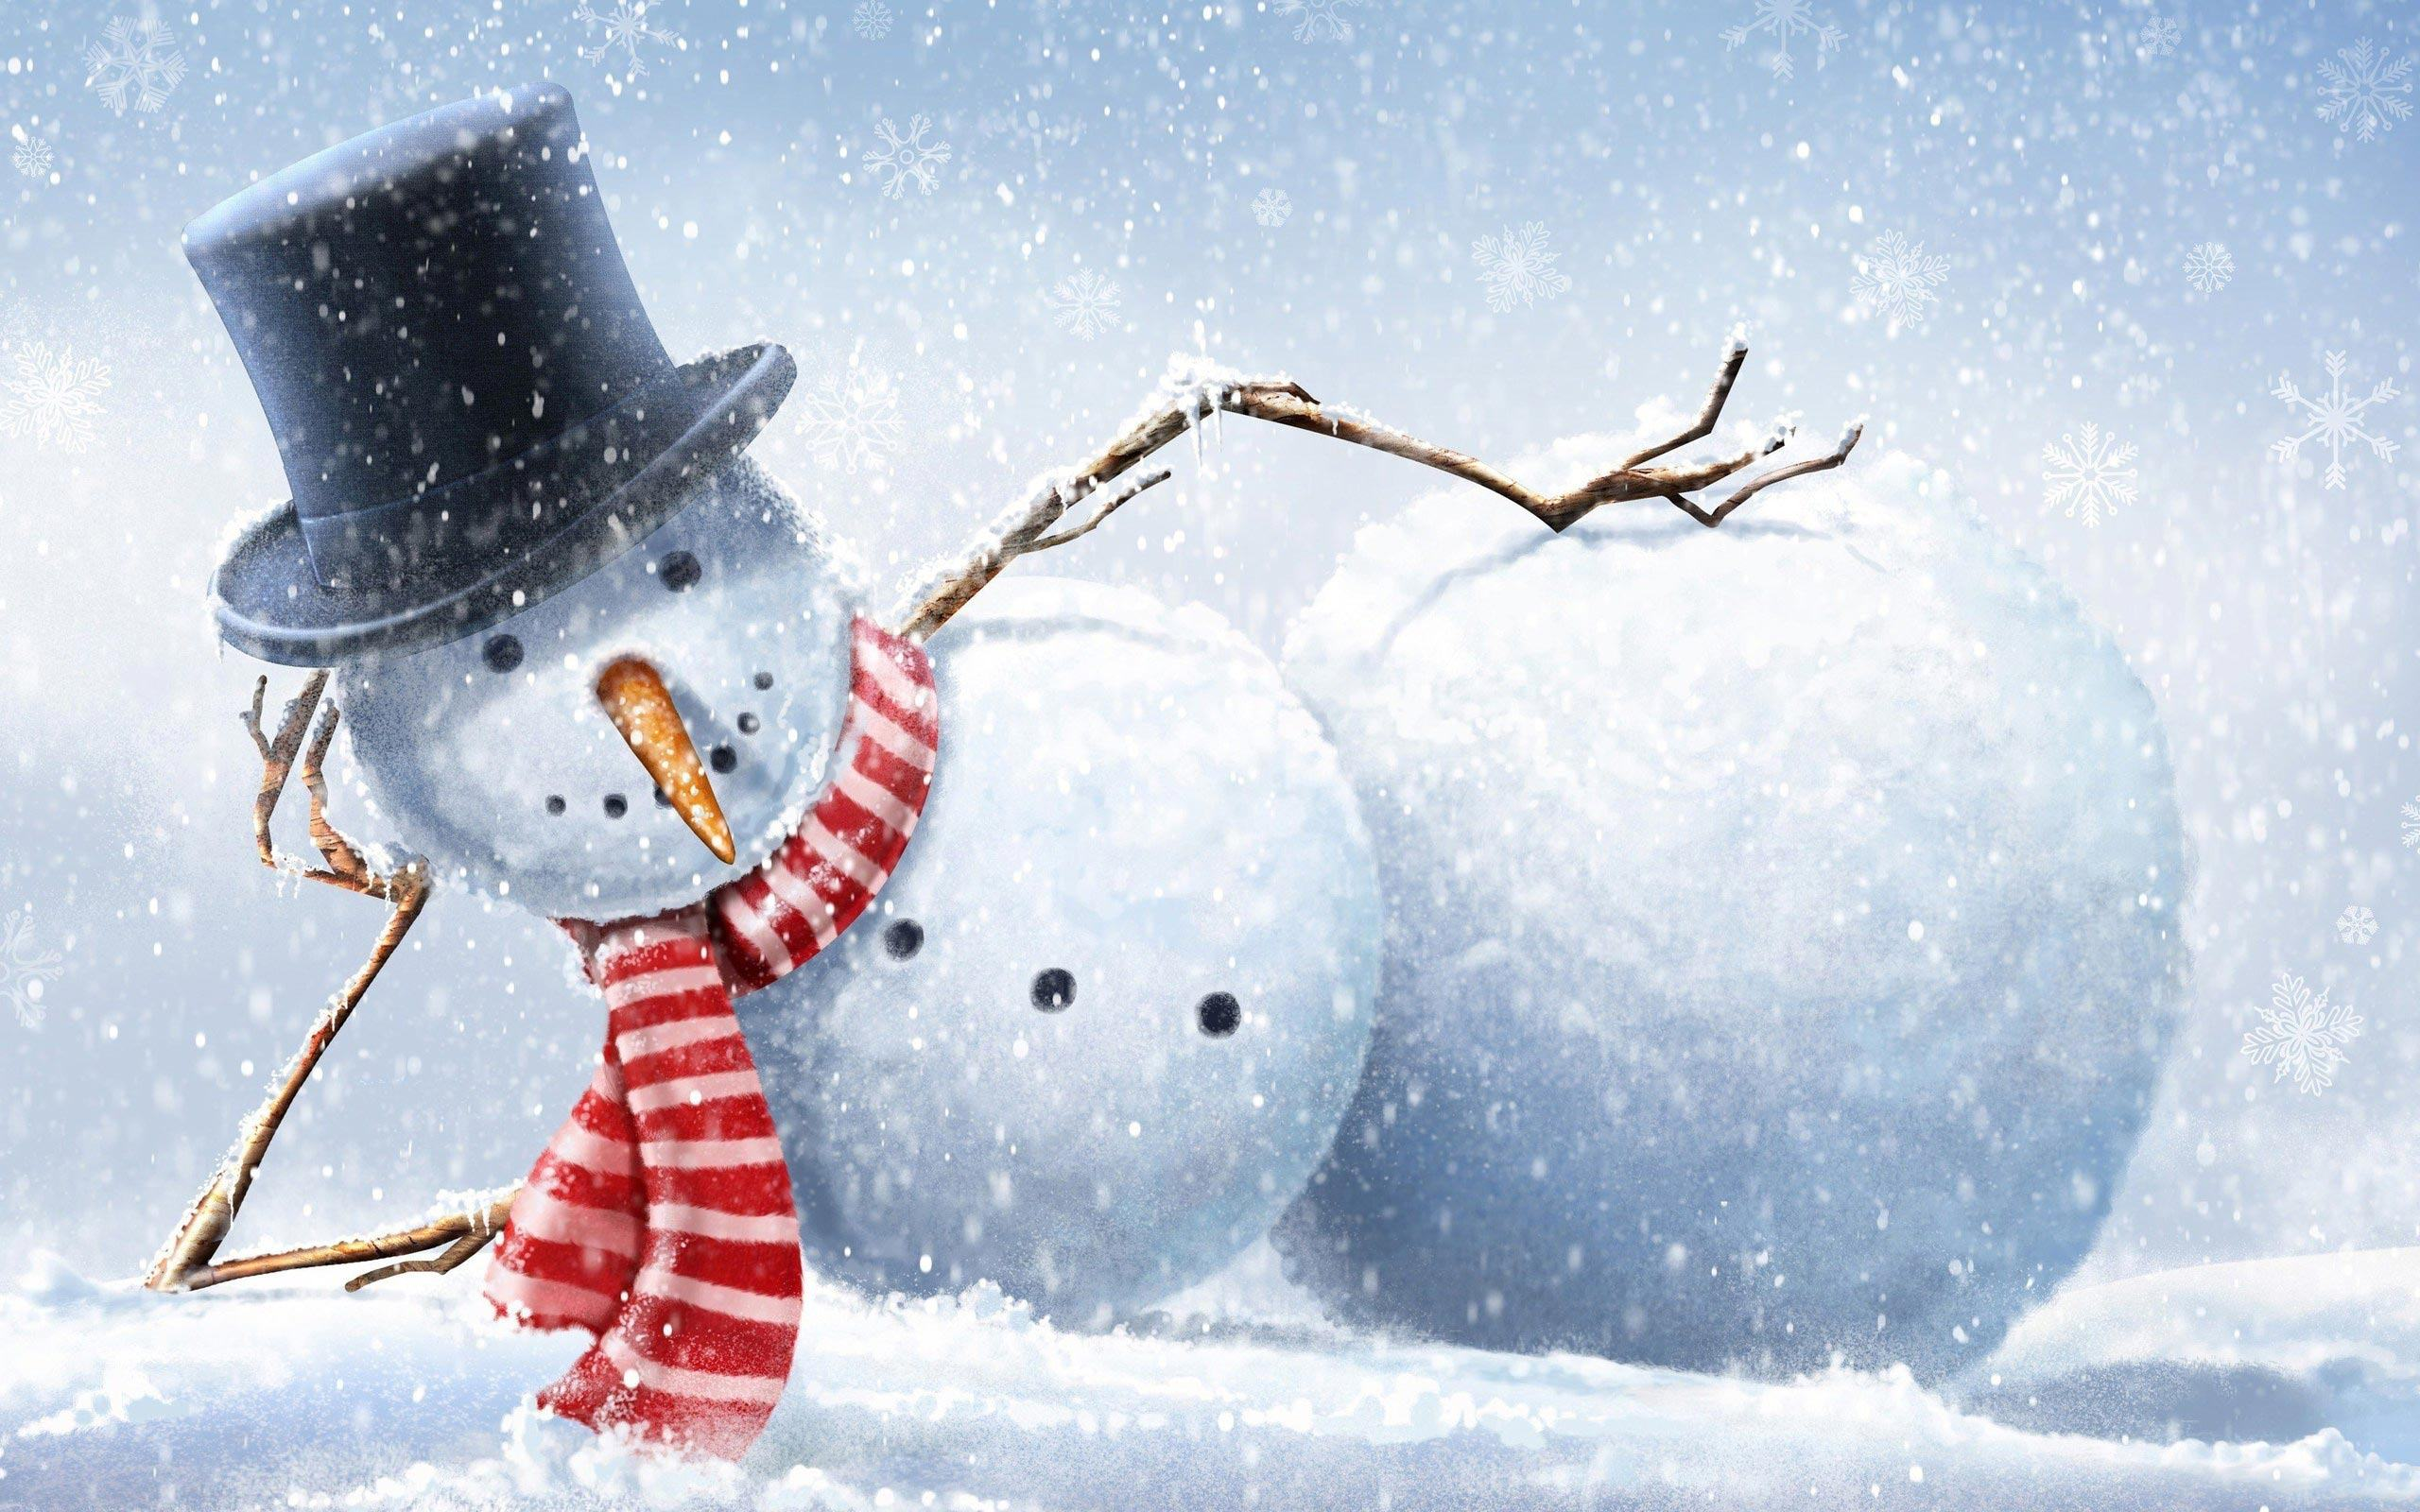 Snowman Wallpapers Download 2560x1600